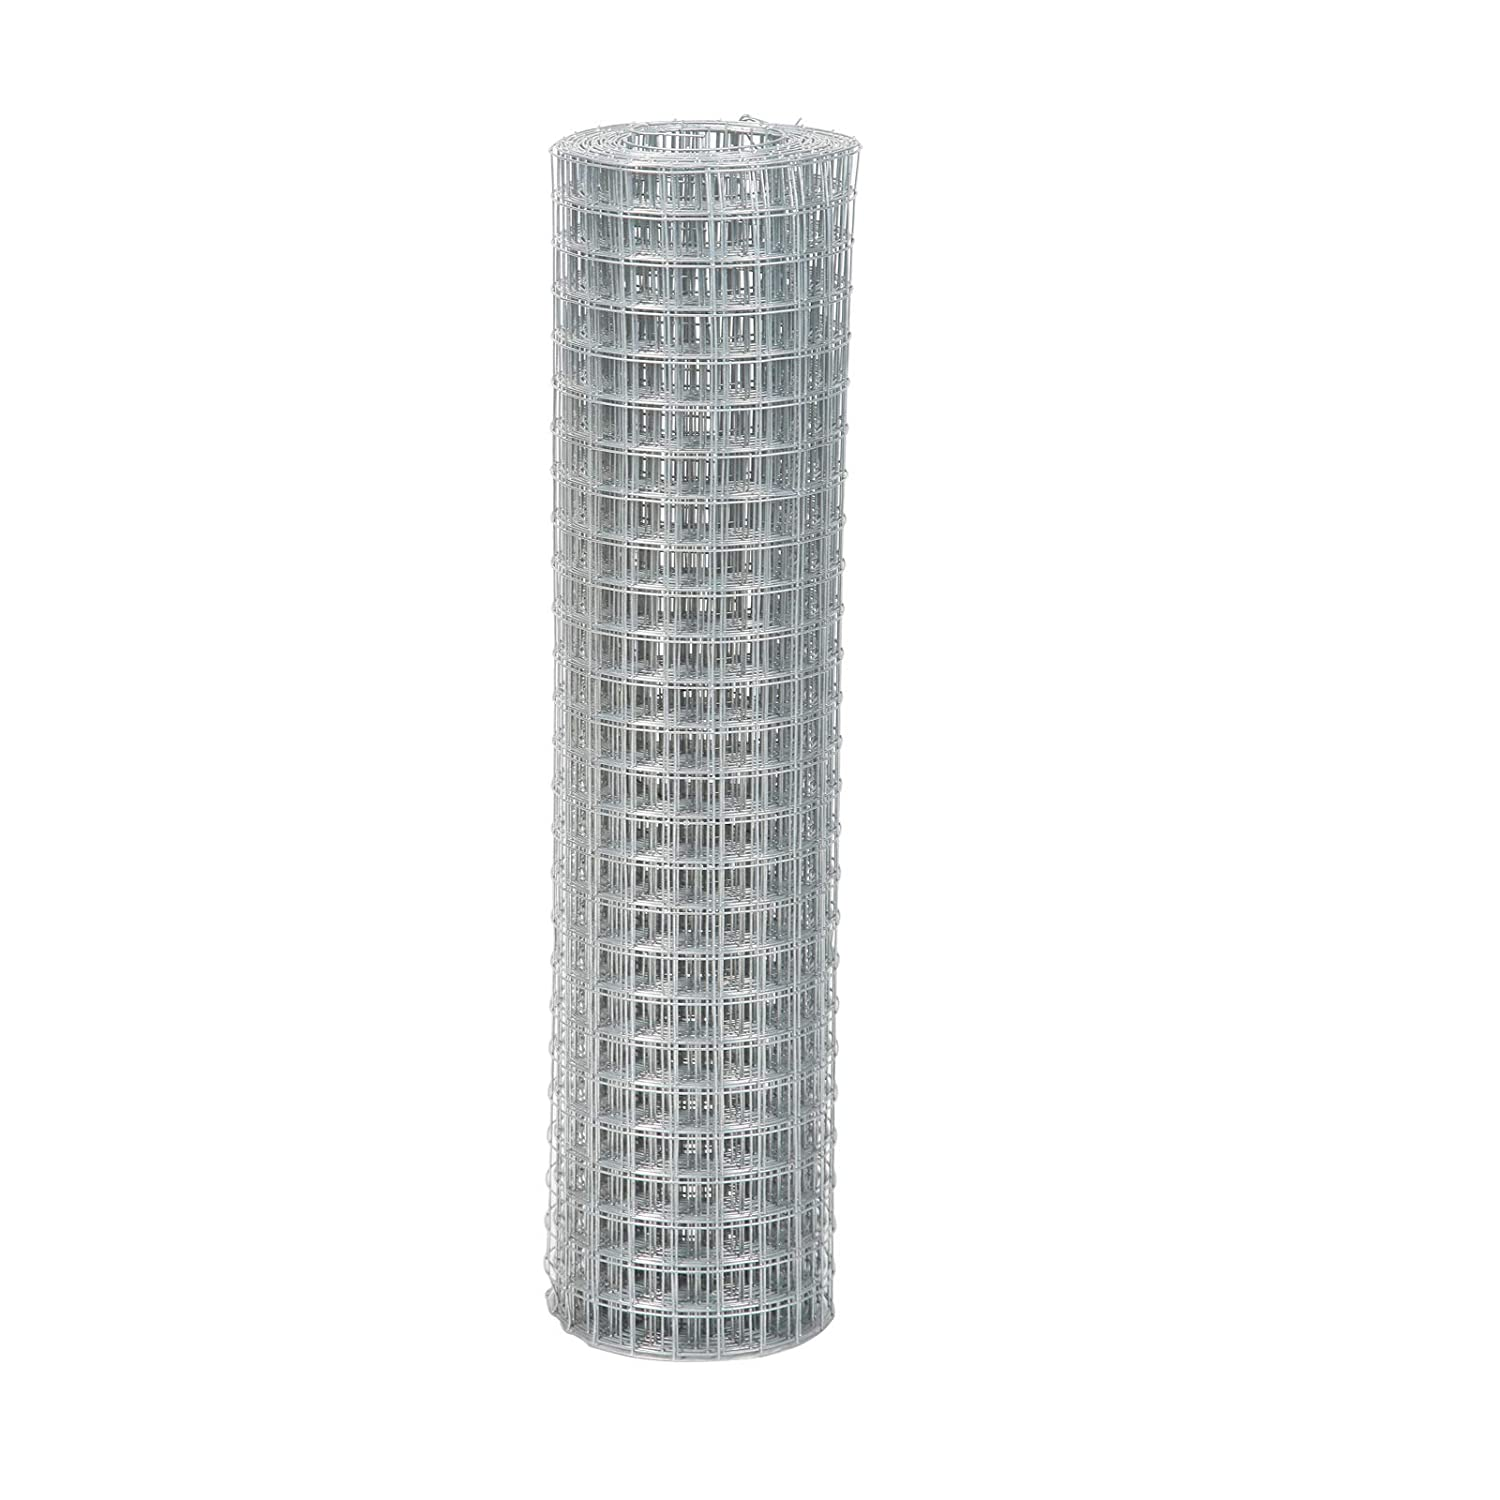 24 36 48 Galvanized Welded Wire Mesh Hardware Cloth Safeguard Fencing 1//2inch 24in100ft